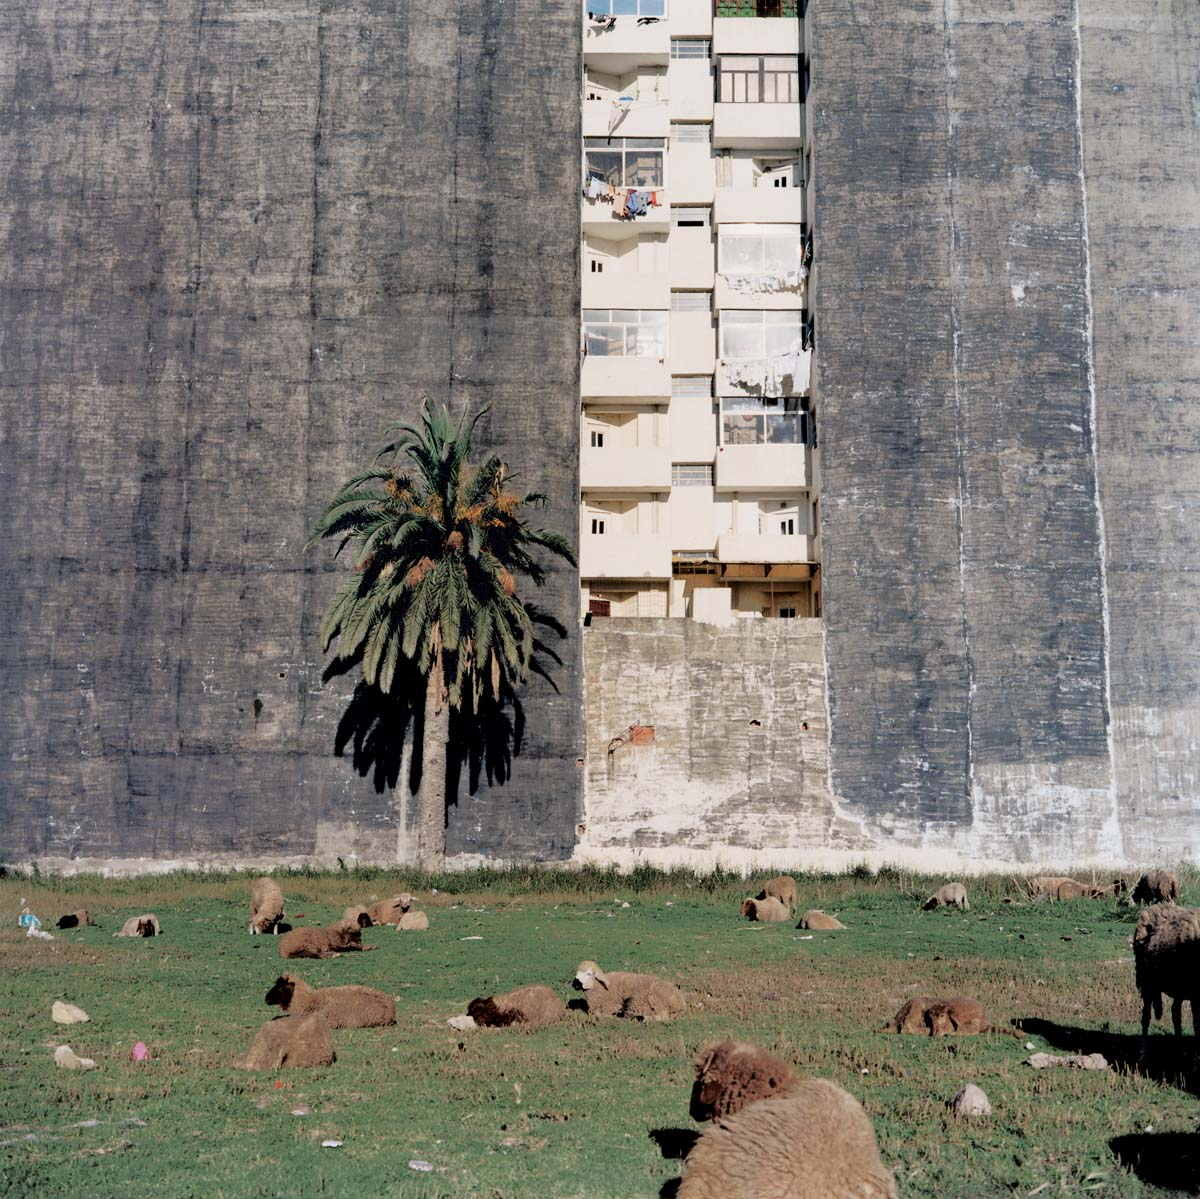 a photo of a block of flats with a tree, field and sheep in the foreground